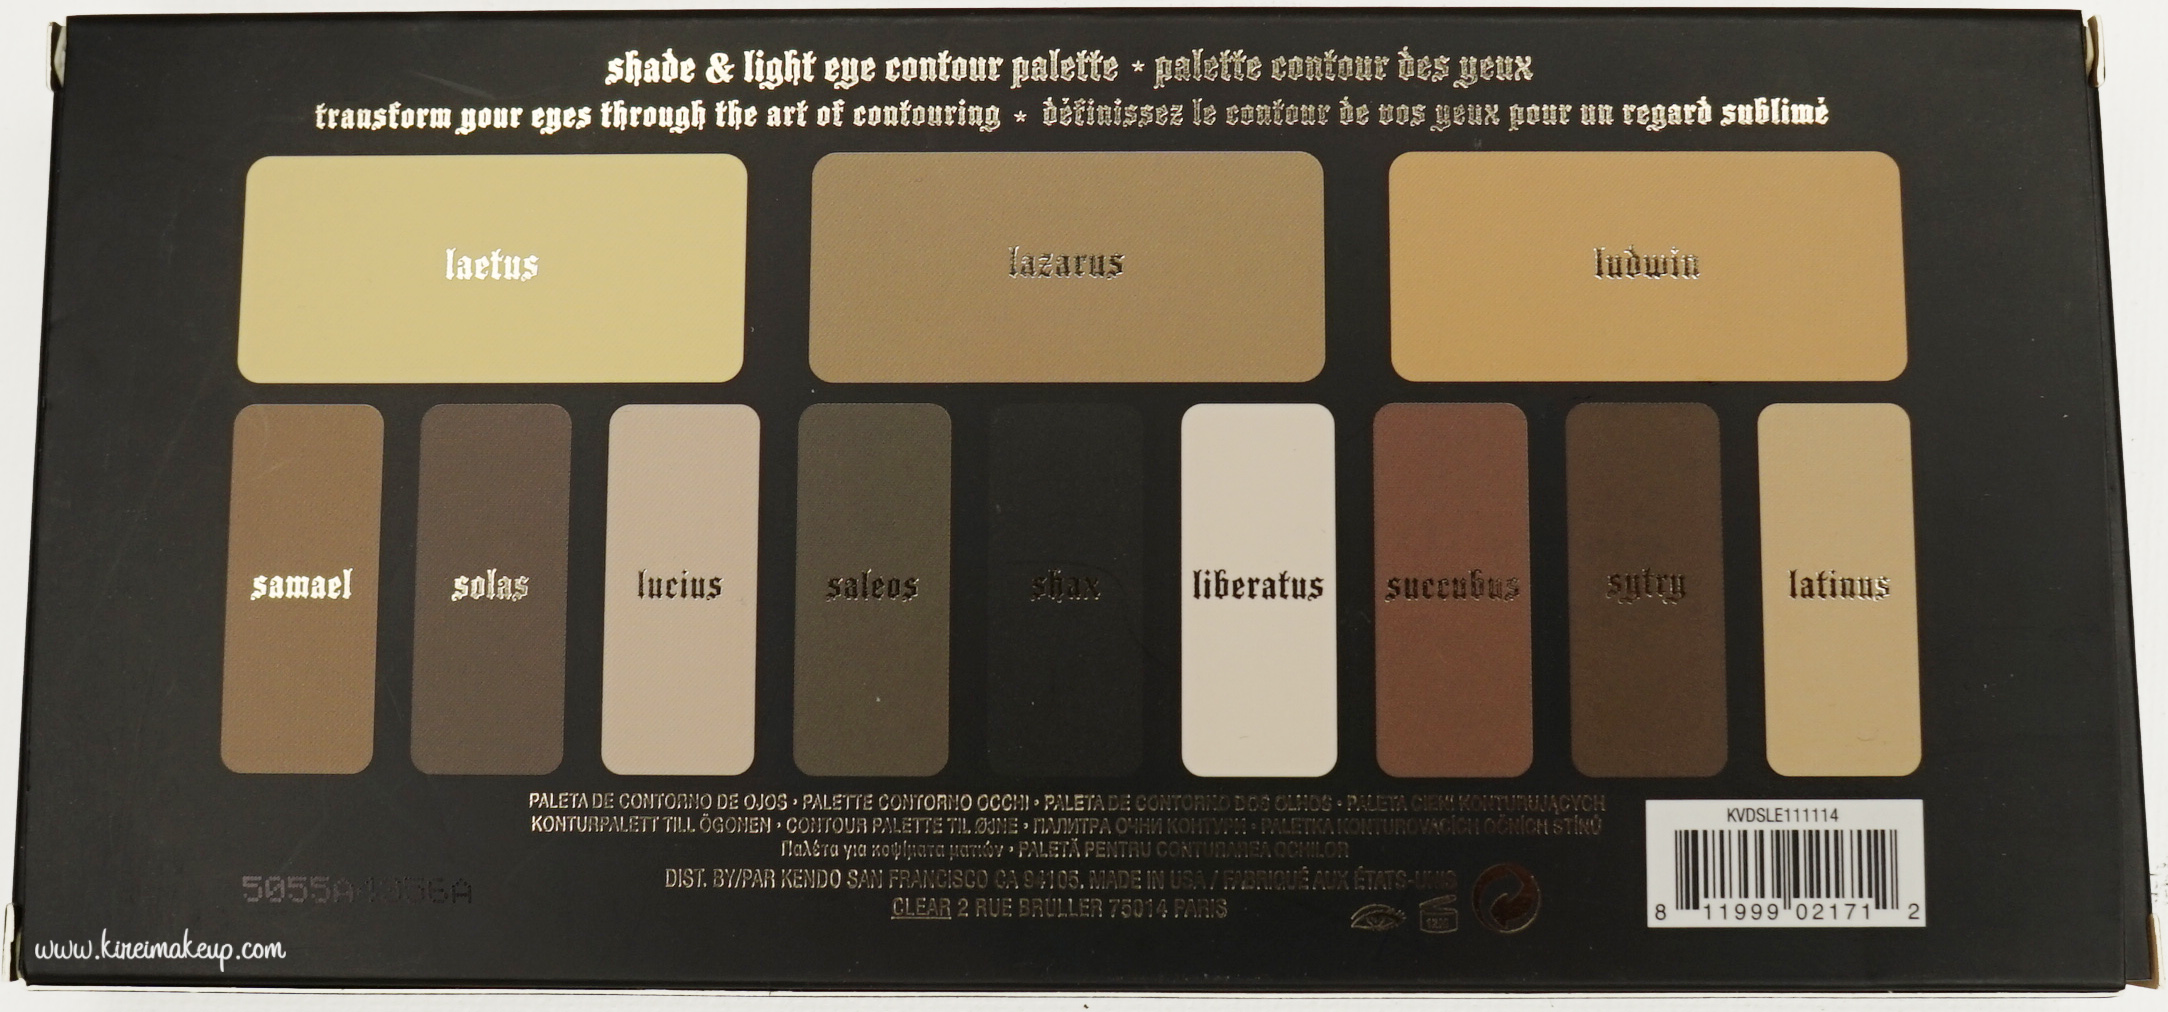 Kvd Shade Amp Light Eye Contour Palette Review Kirei Makeup